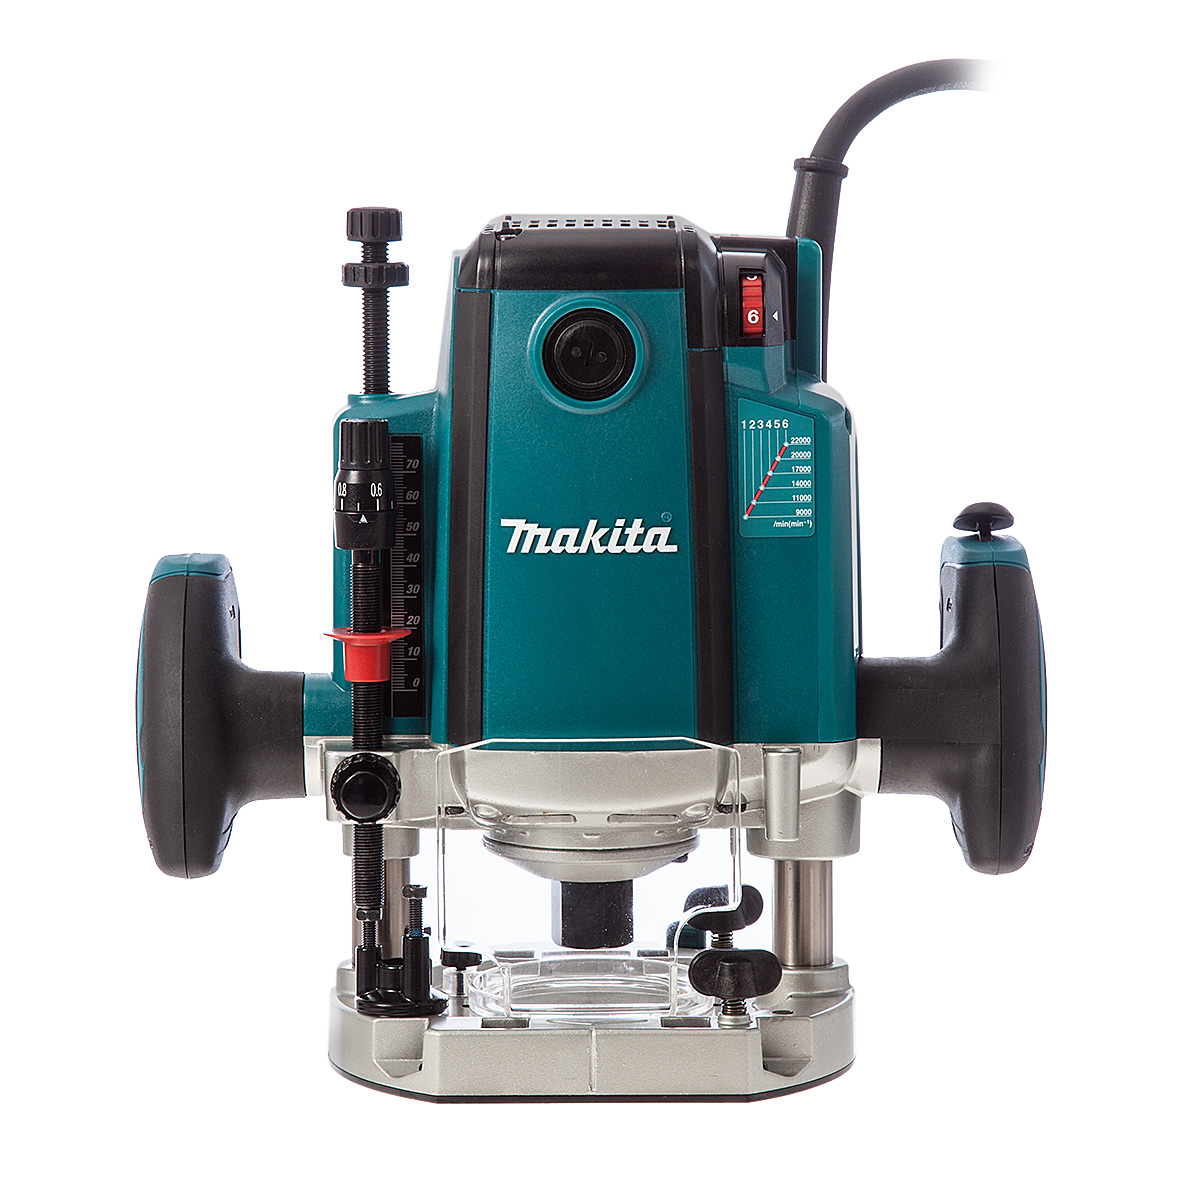 Makita Spares and Parts at low prices